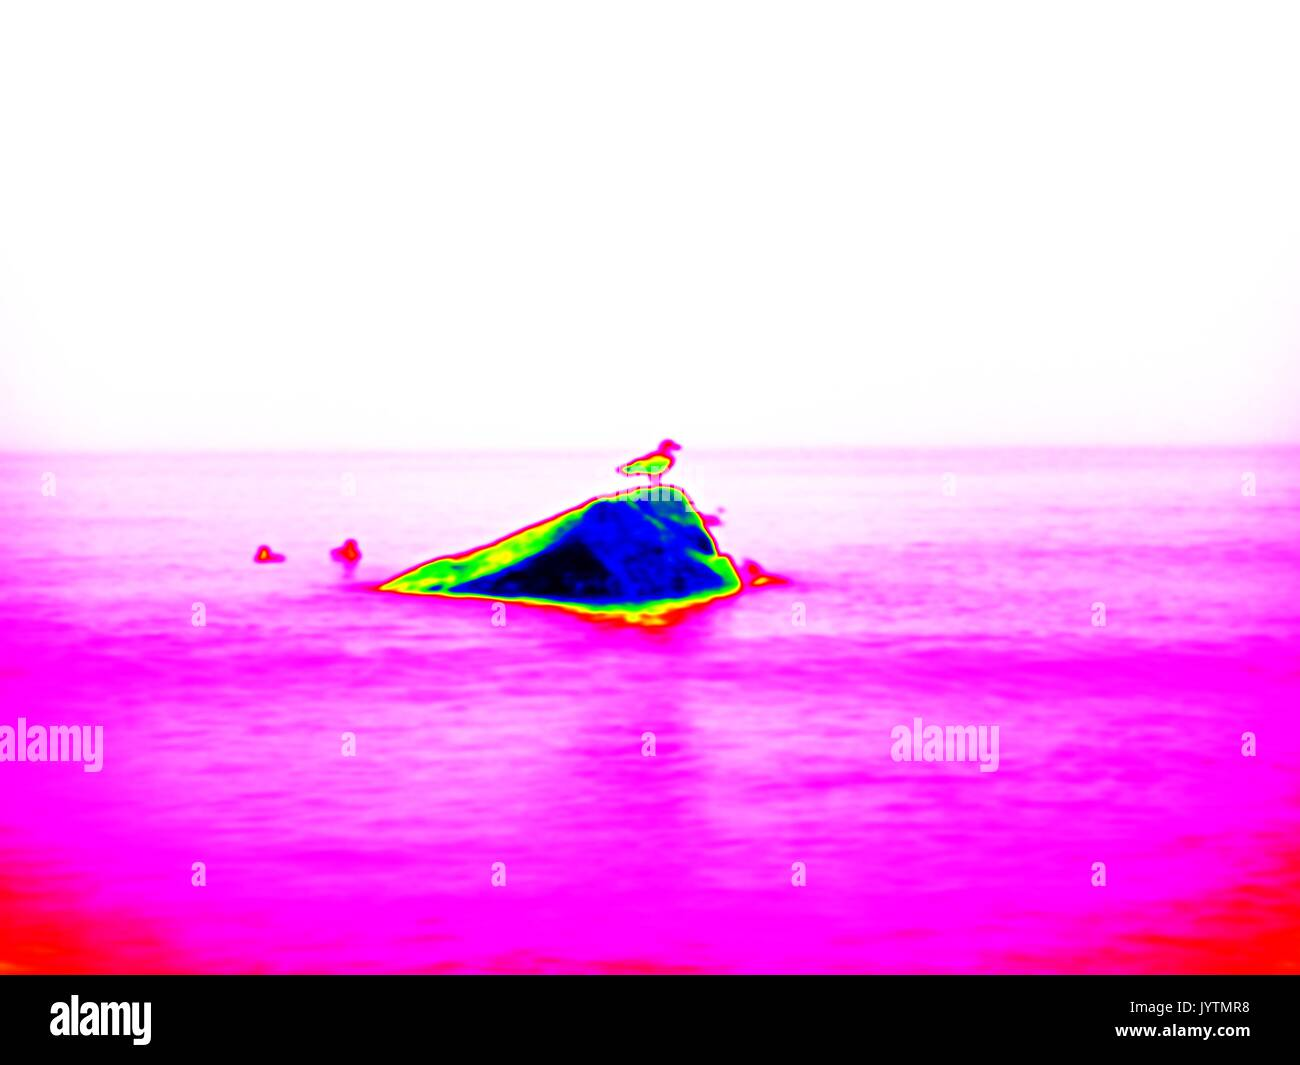 Thermography measurement, changed colors of ultra violet light. Stony ocean beach with big boulders. Thermography effect. - Stock Image